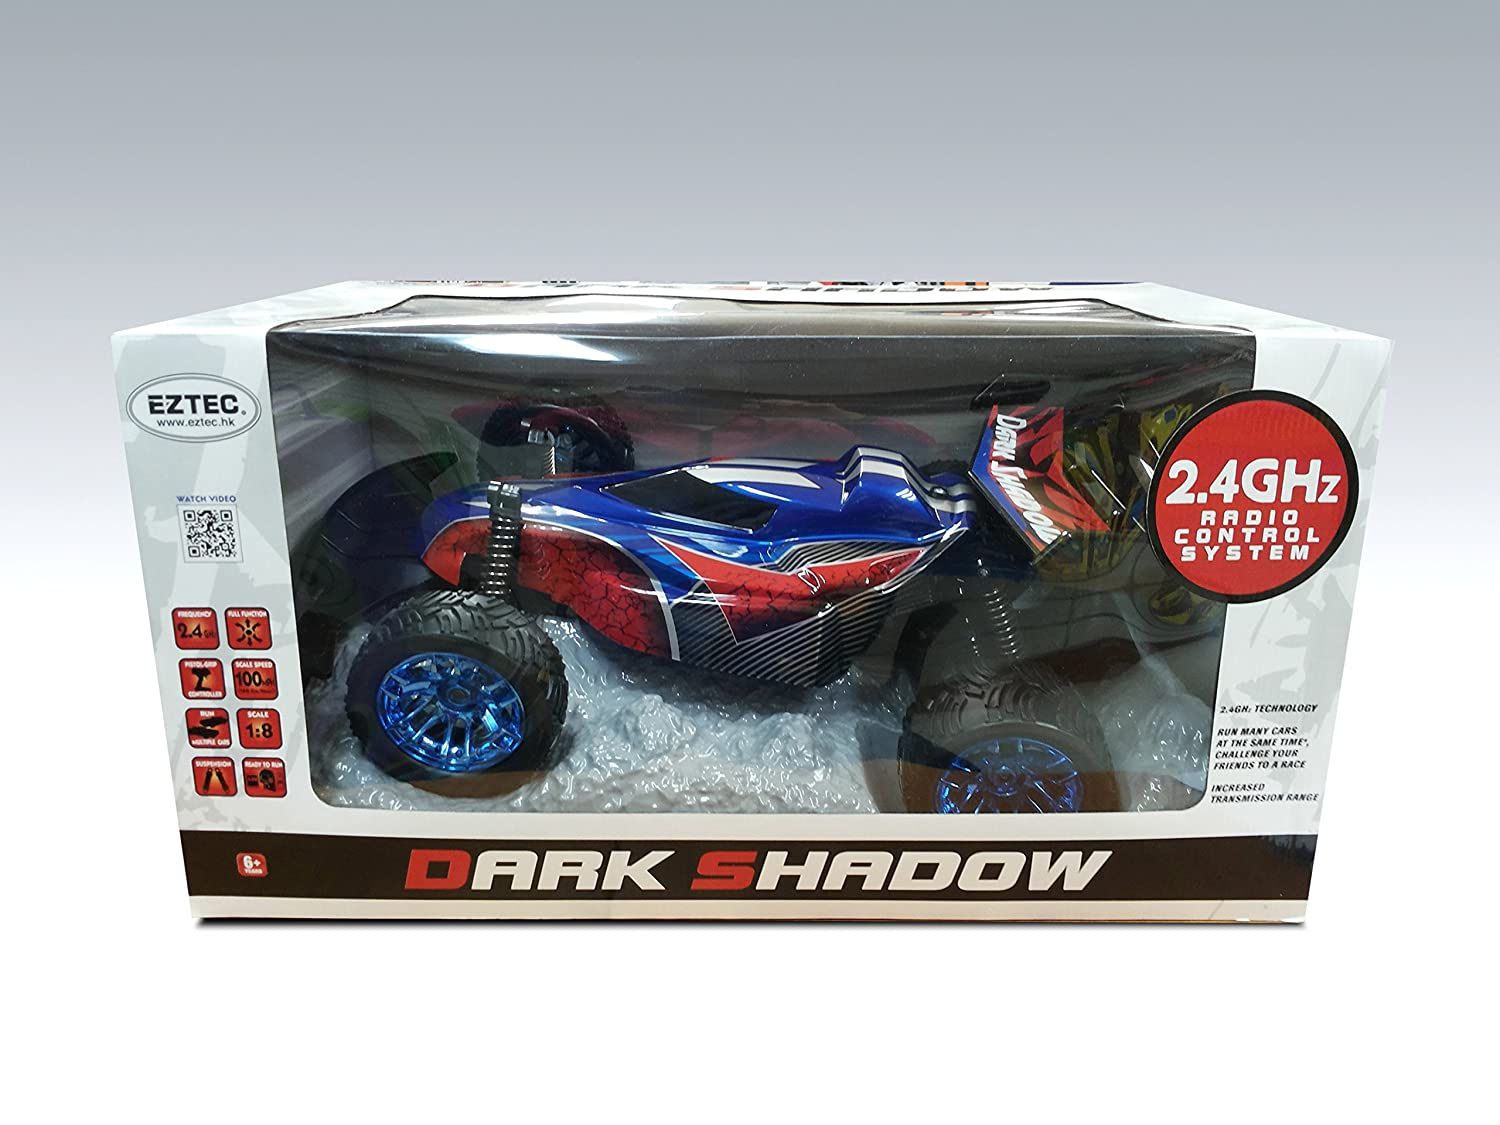 Amazon.com: JC Toys Dark Shadow 2.4GHz Remote Control Racing Buggy Car (1:8 Scale): Toys & Games